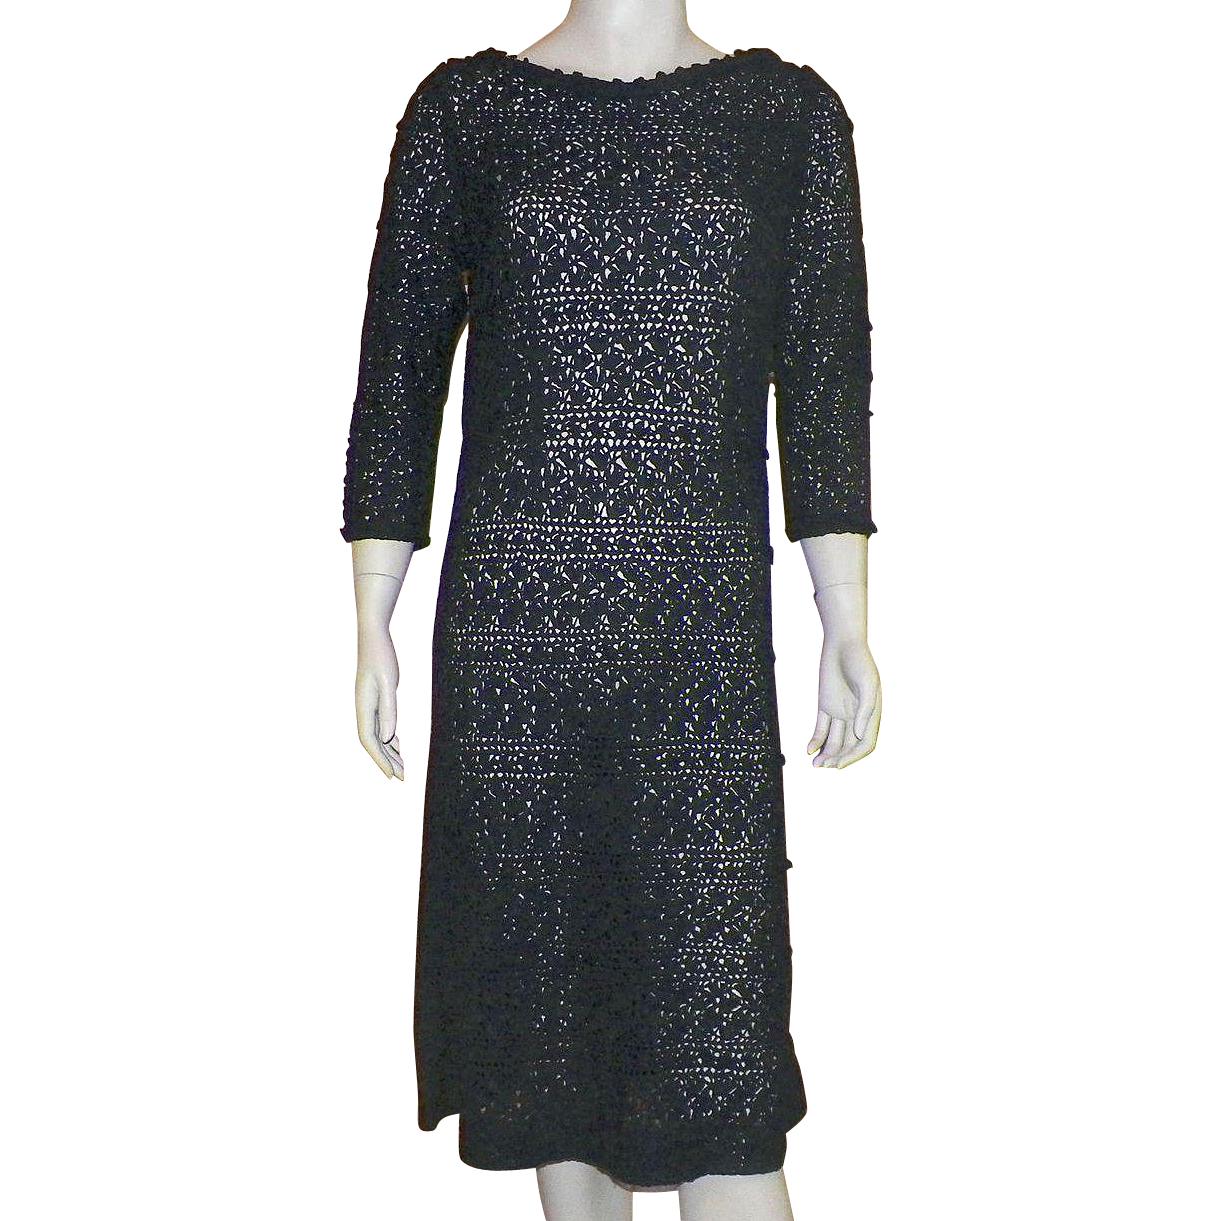 Vintage 1960s Black Ribbon Dress Bergdorf Goodman